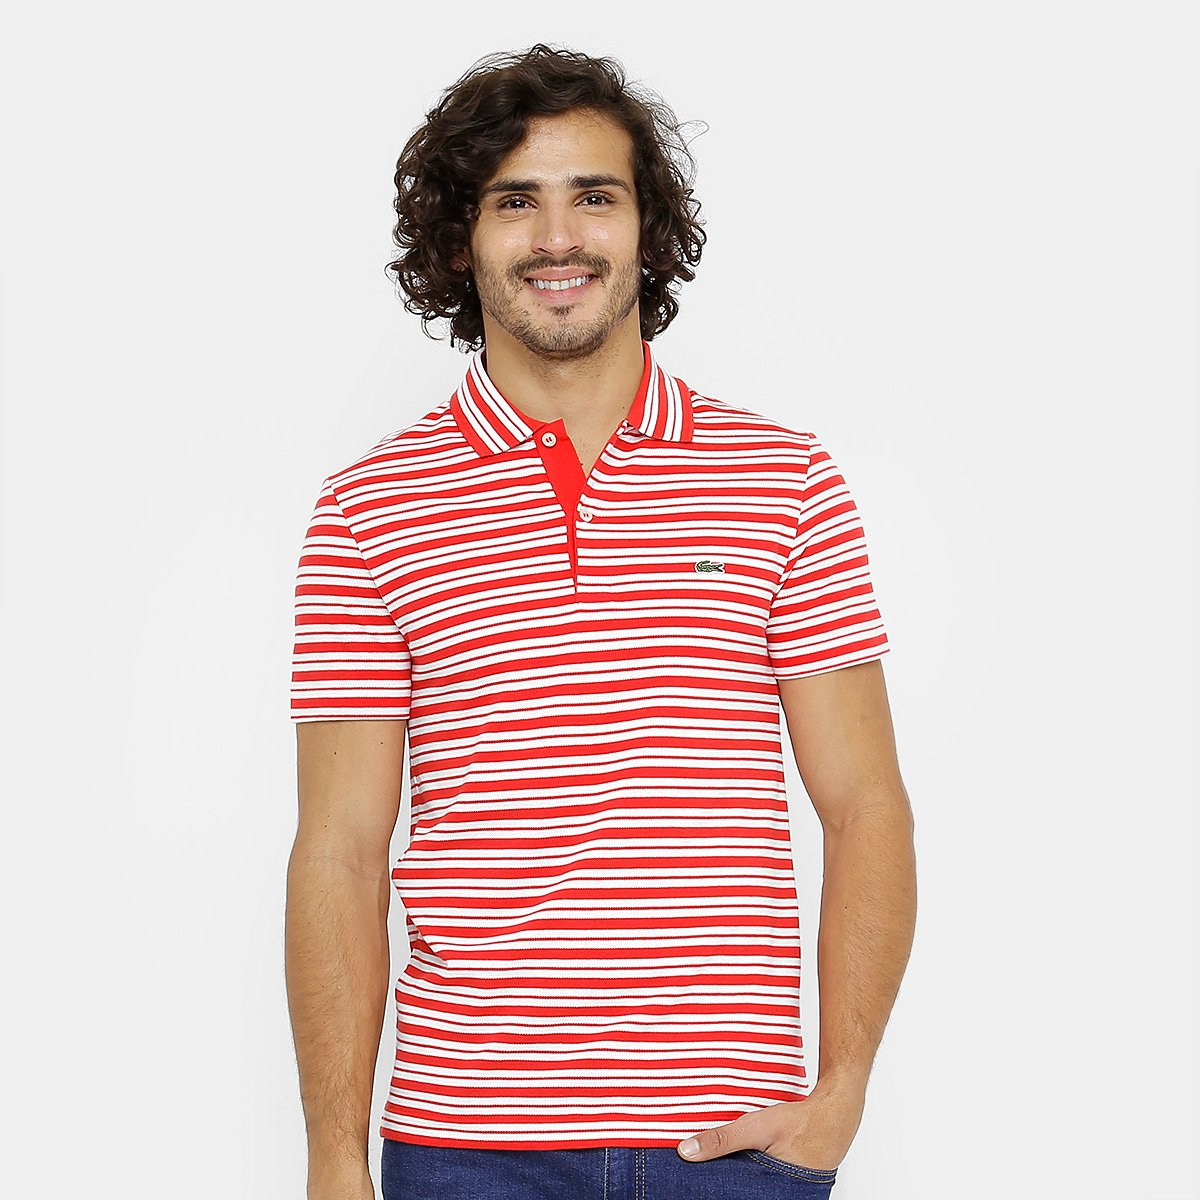 Camisa Polo Lacoste Piquet Regular Fit Listras Masculina - Compre ... 47058a8585